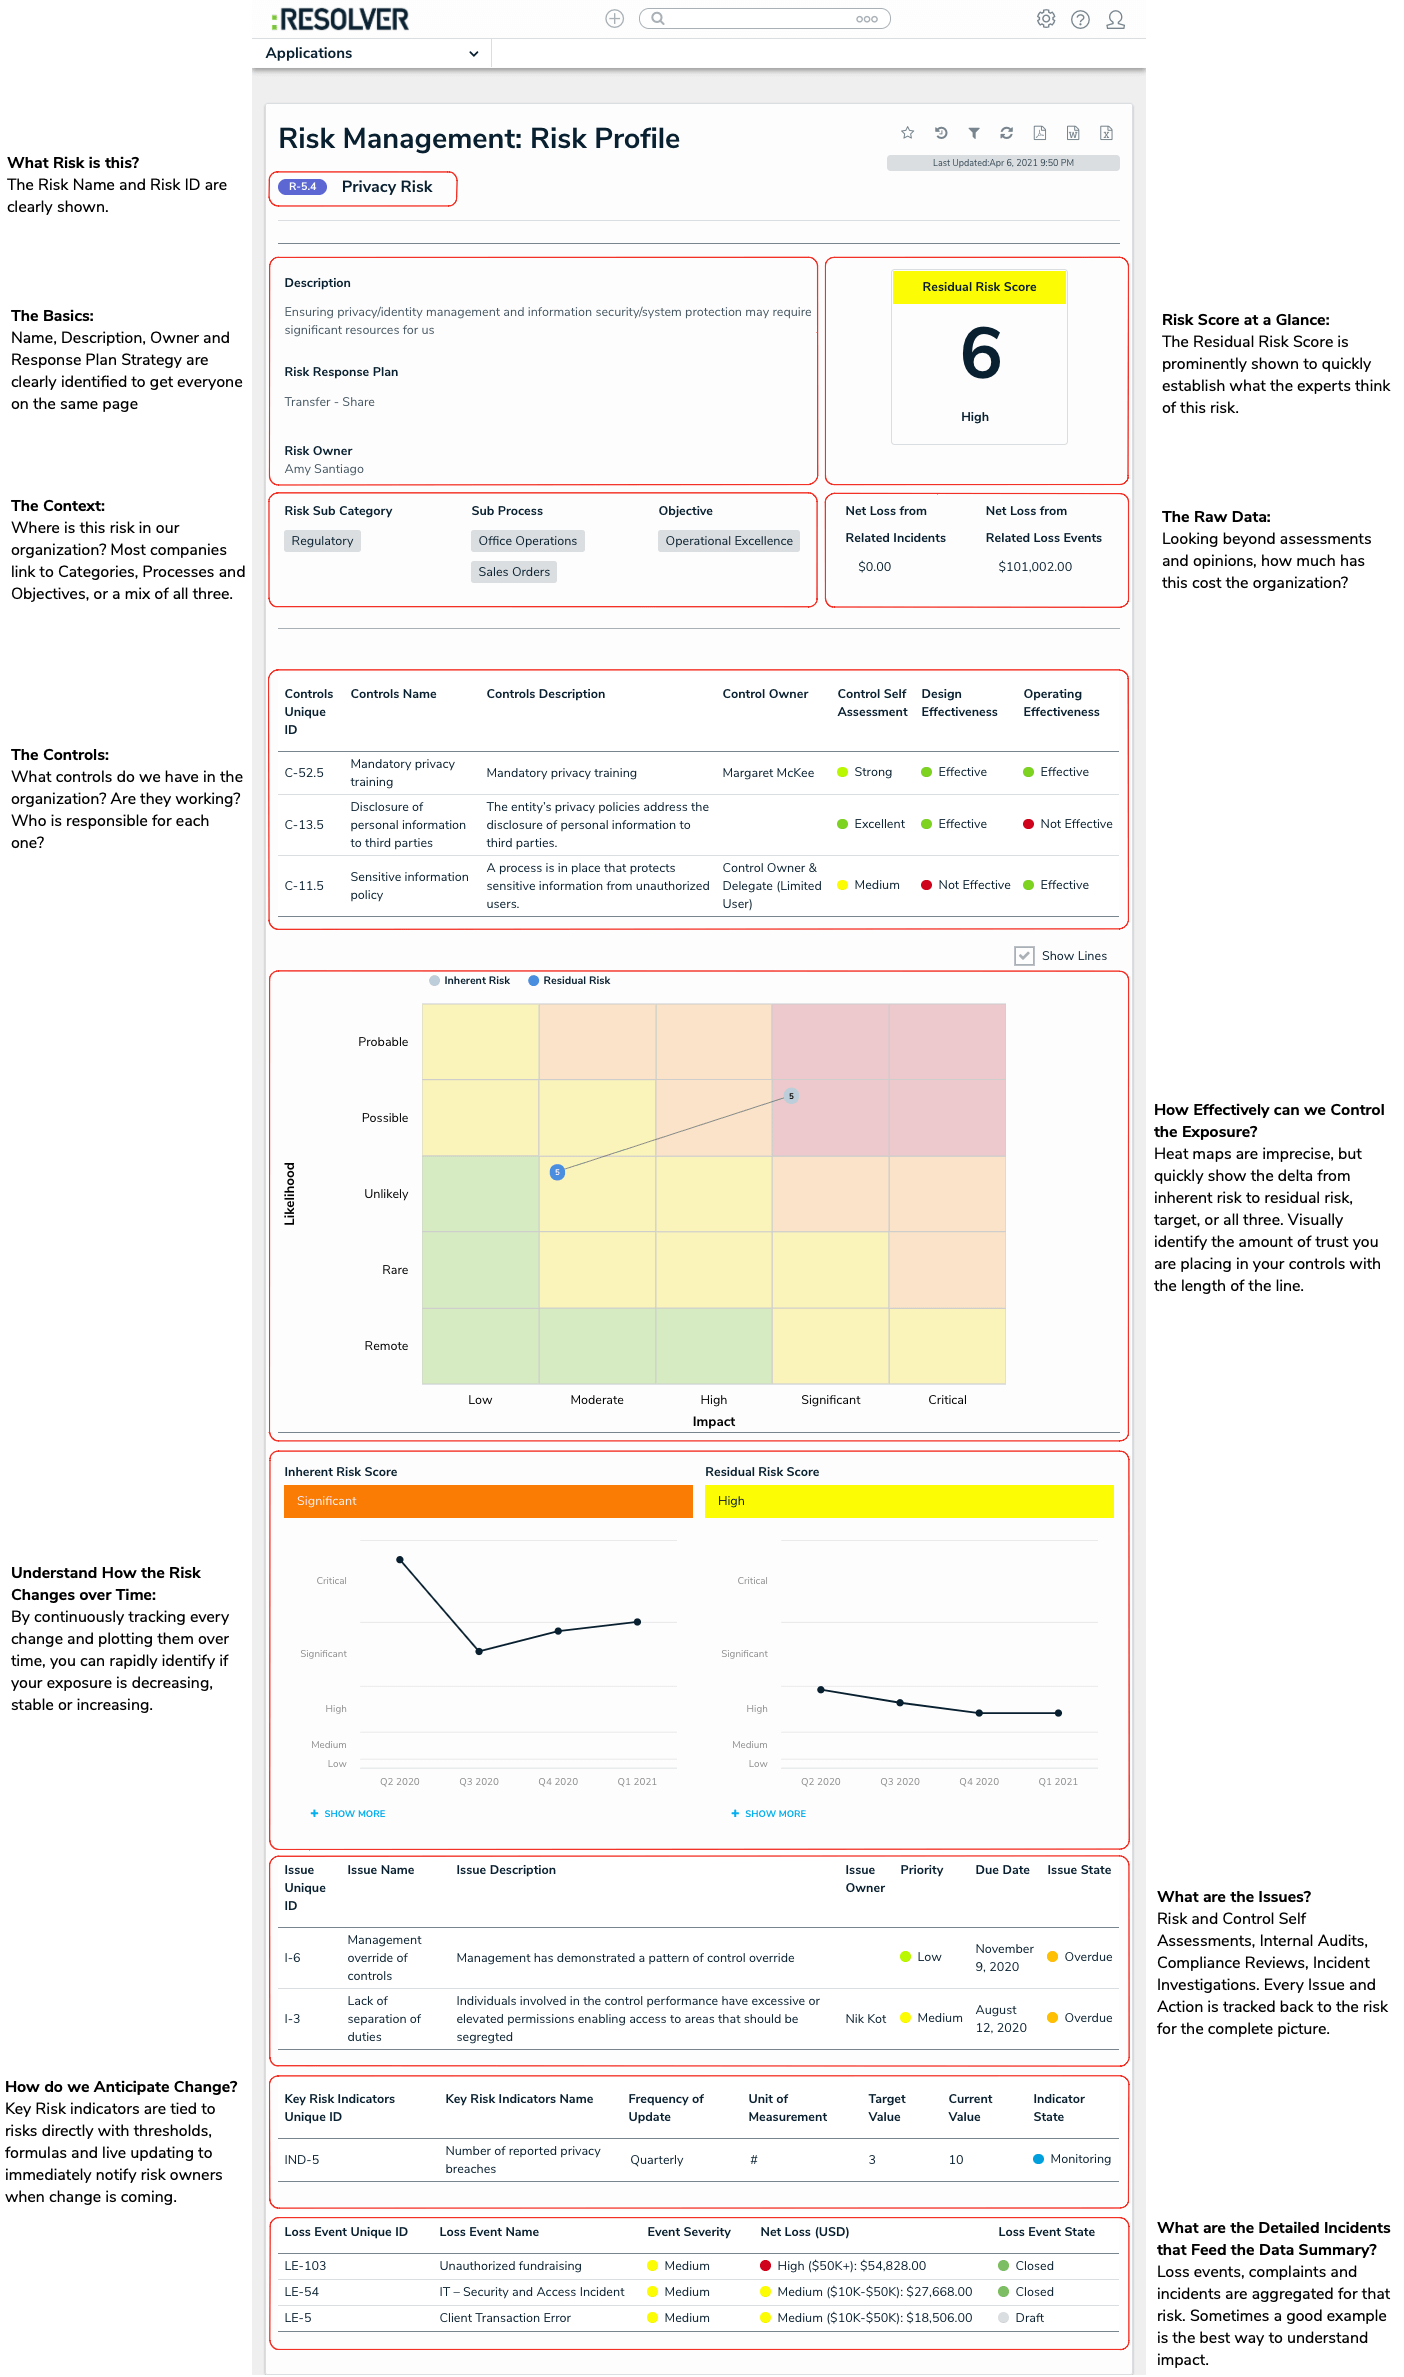 Anatomy of a risk